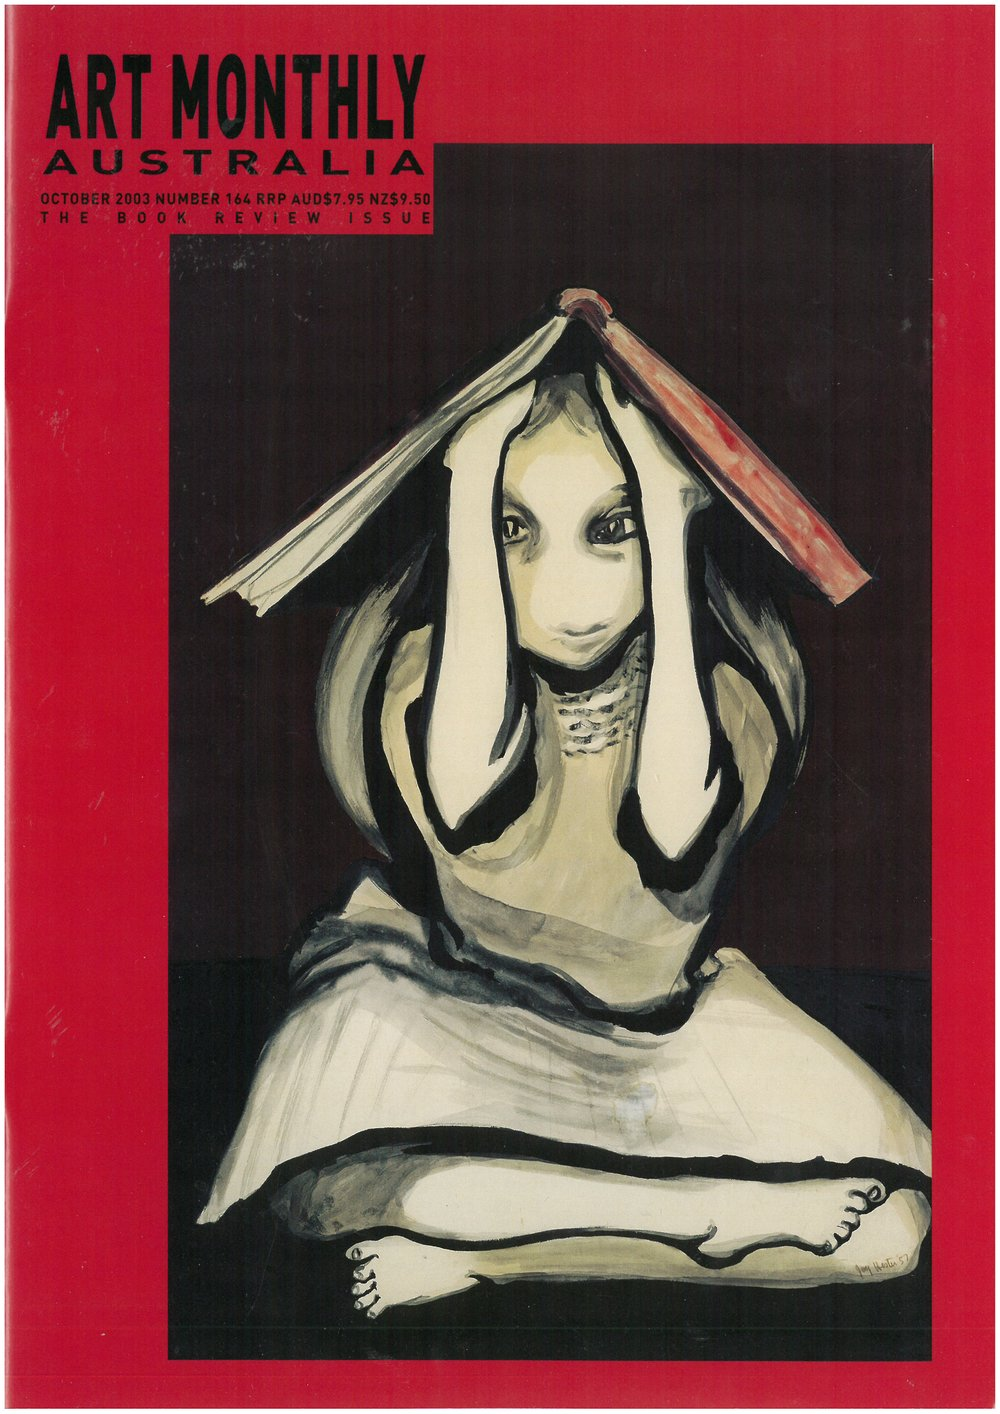 Issue 164 October 2003